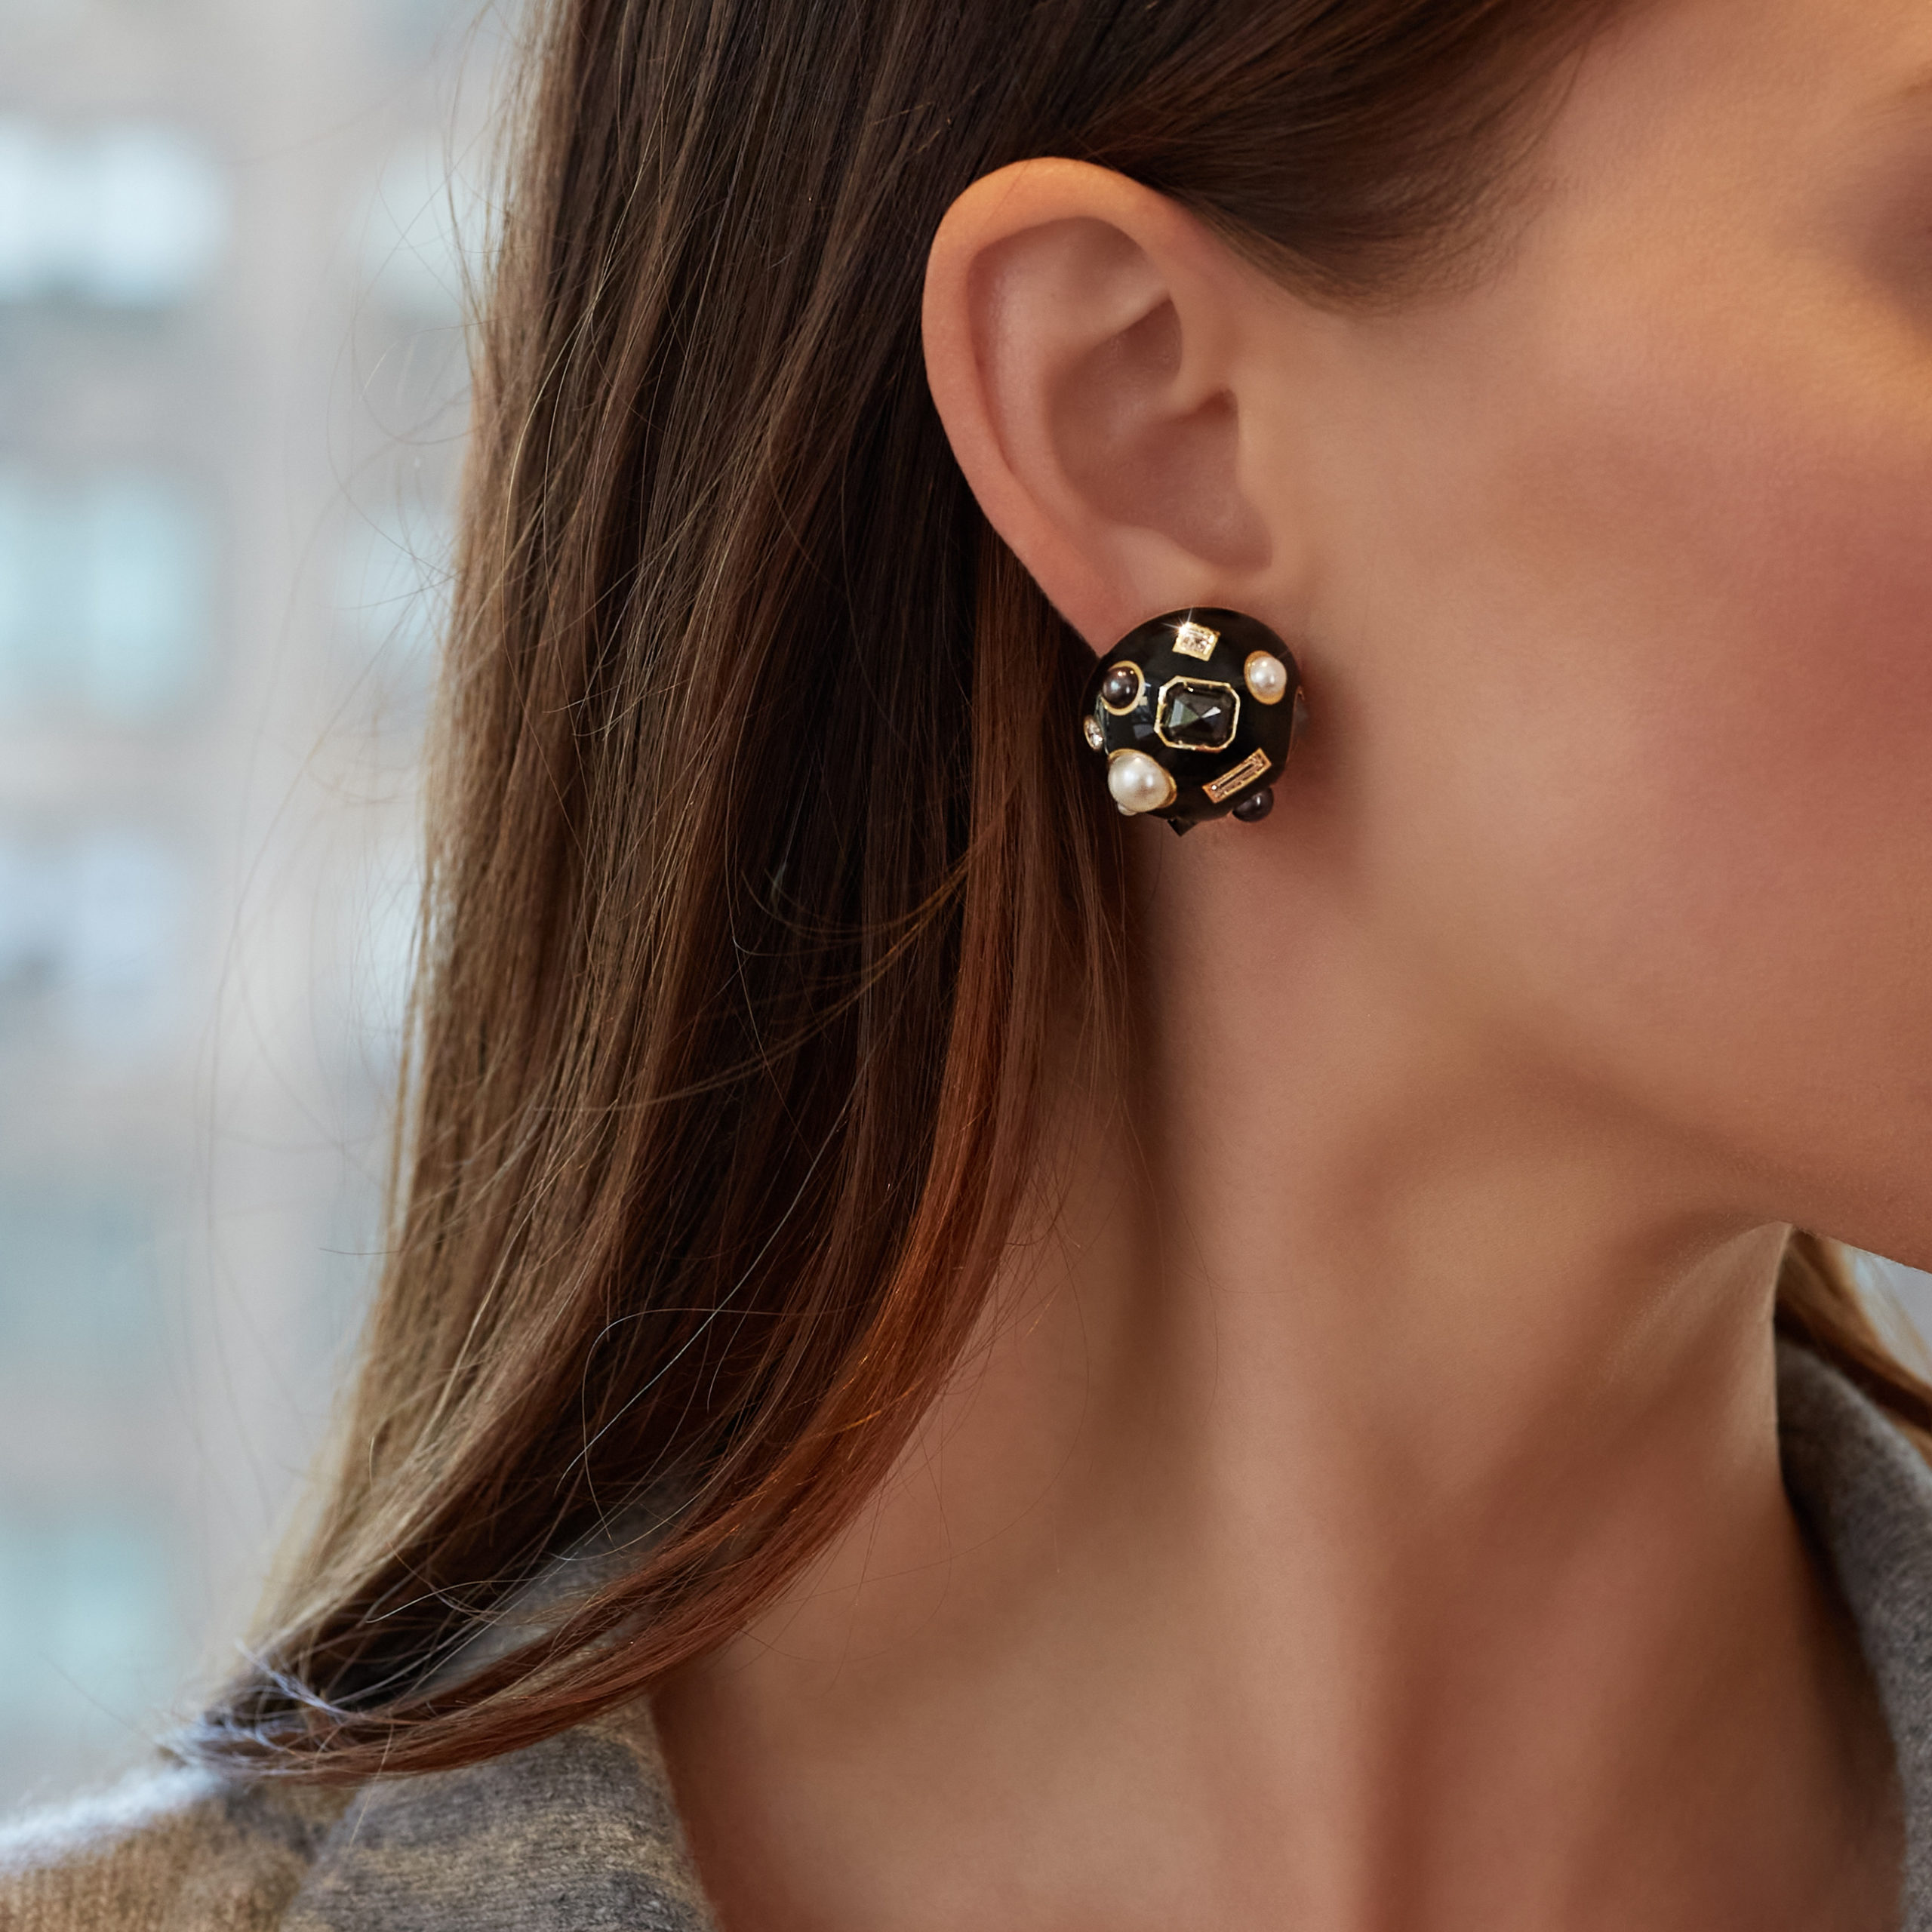 Fulco 80th Earclips in black